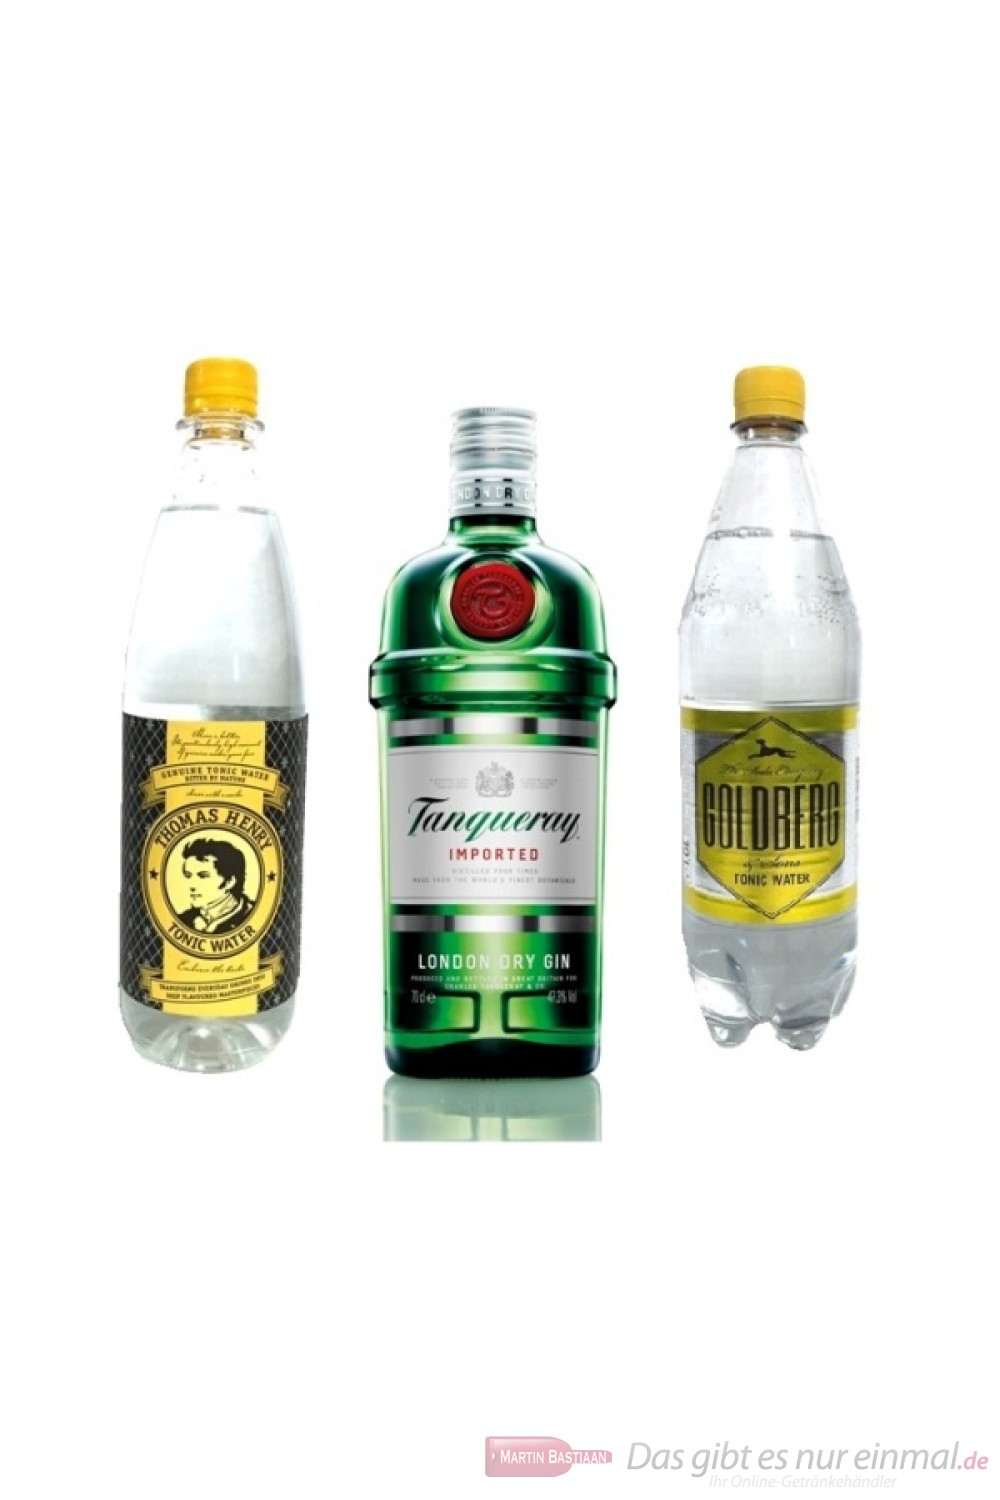 Tanqueray Gin Tonic Water Max Pack